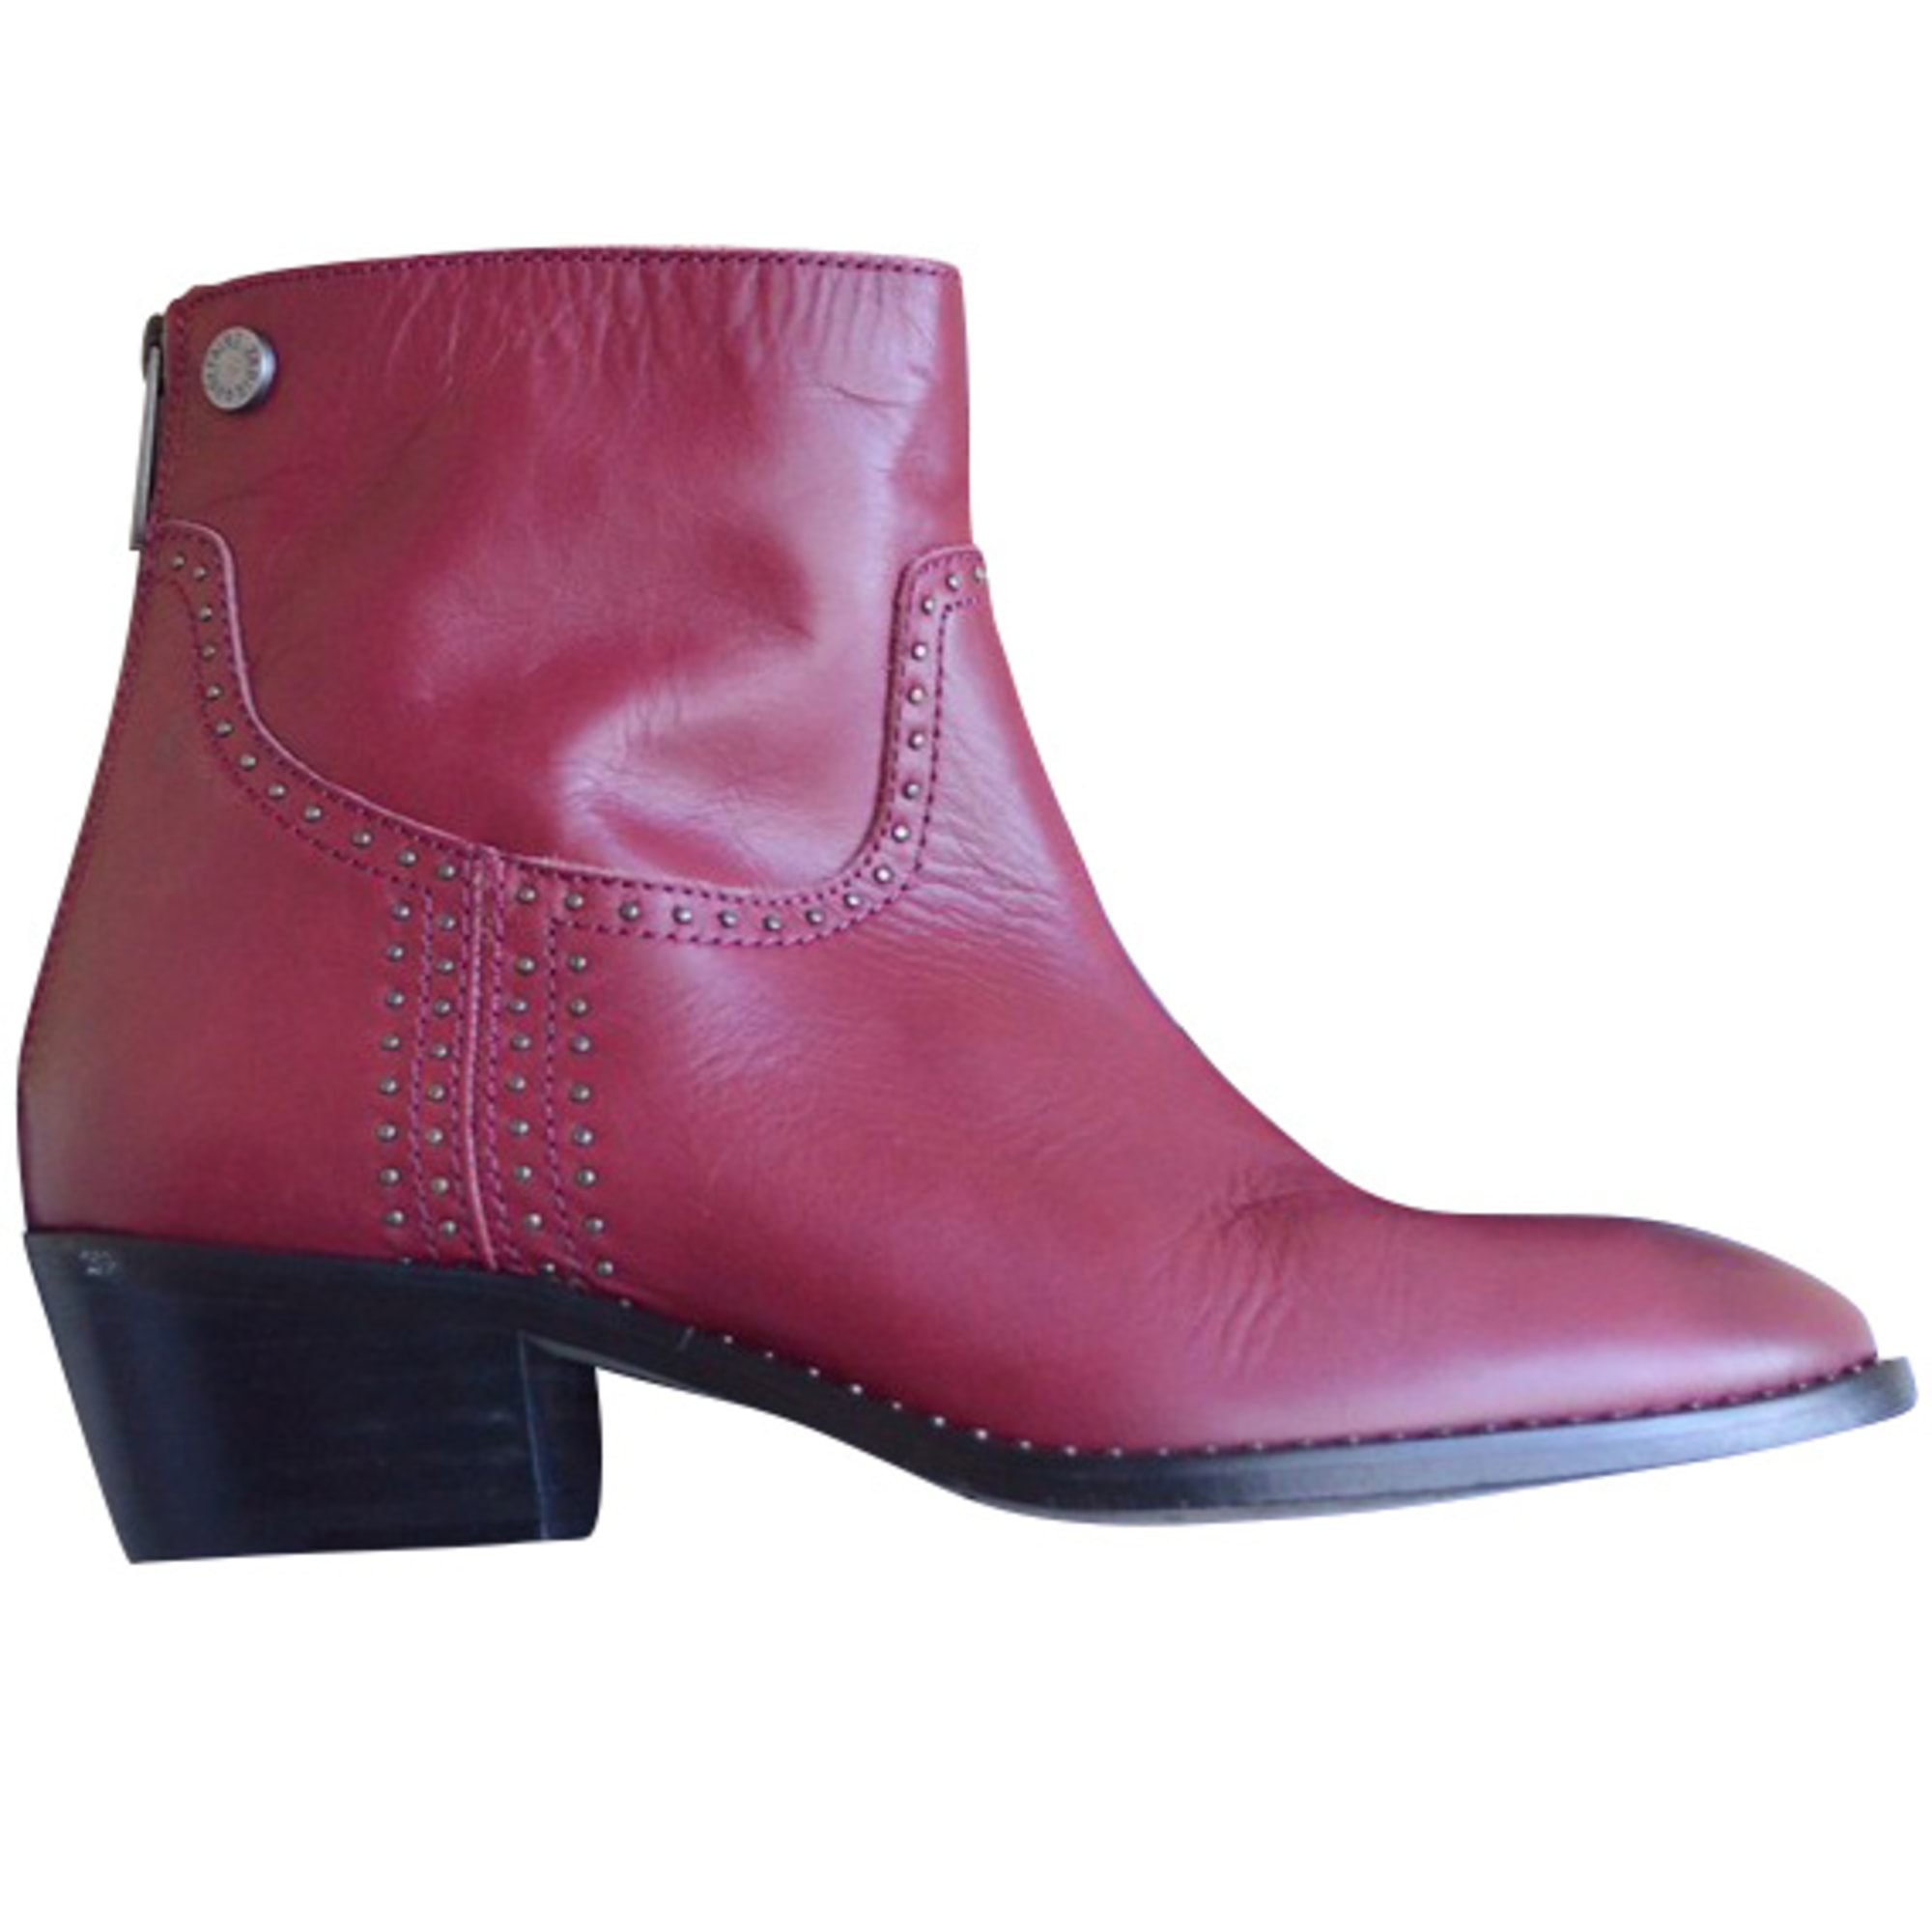 High Heel Ankle Boots ZADIG & VOLTAIRE Red, burgundy